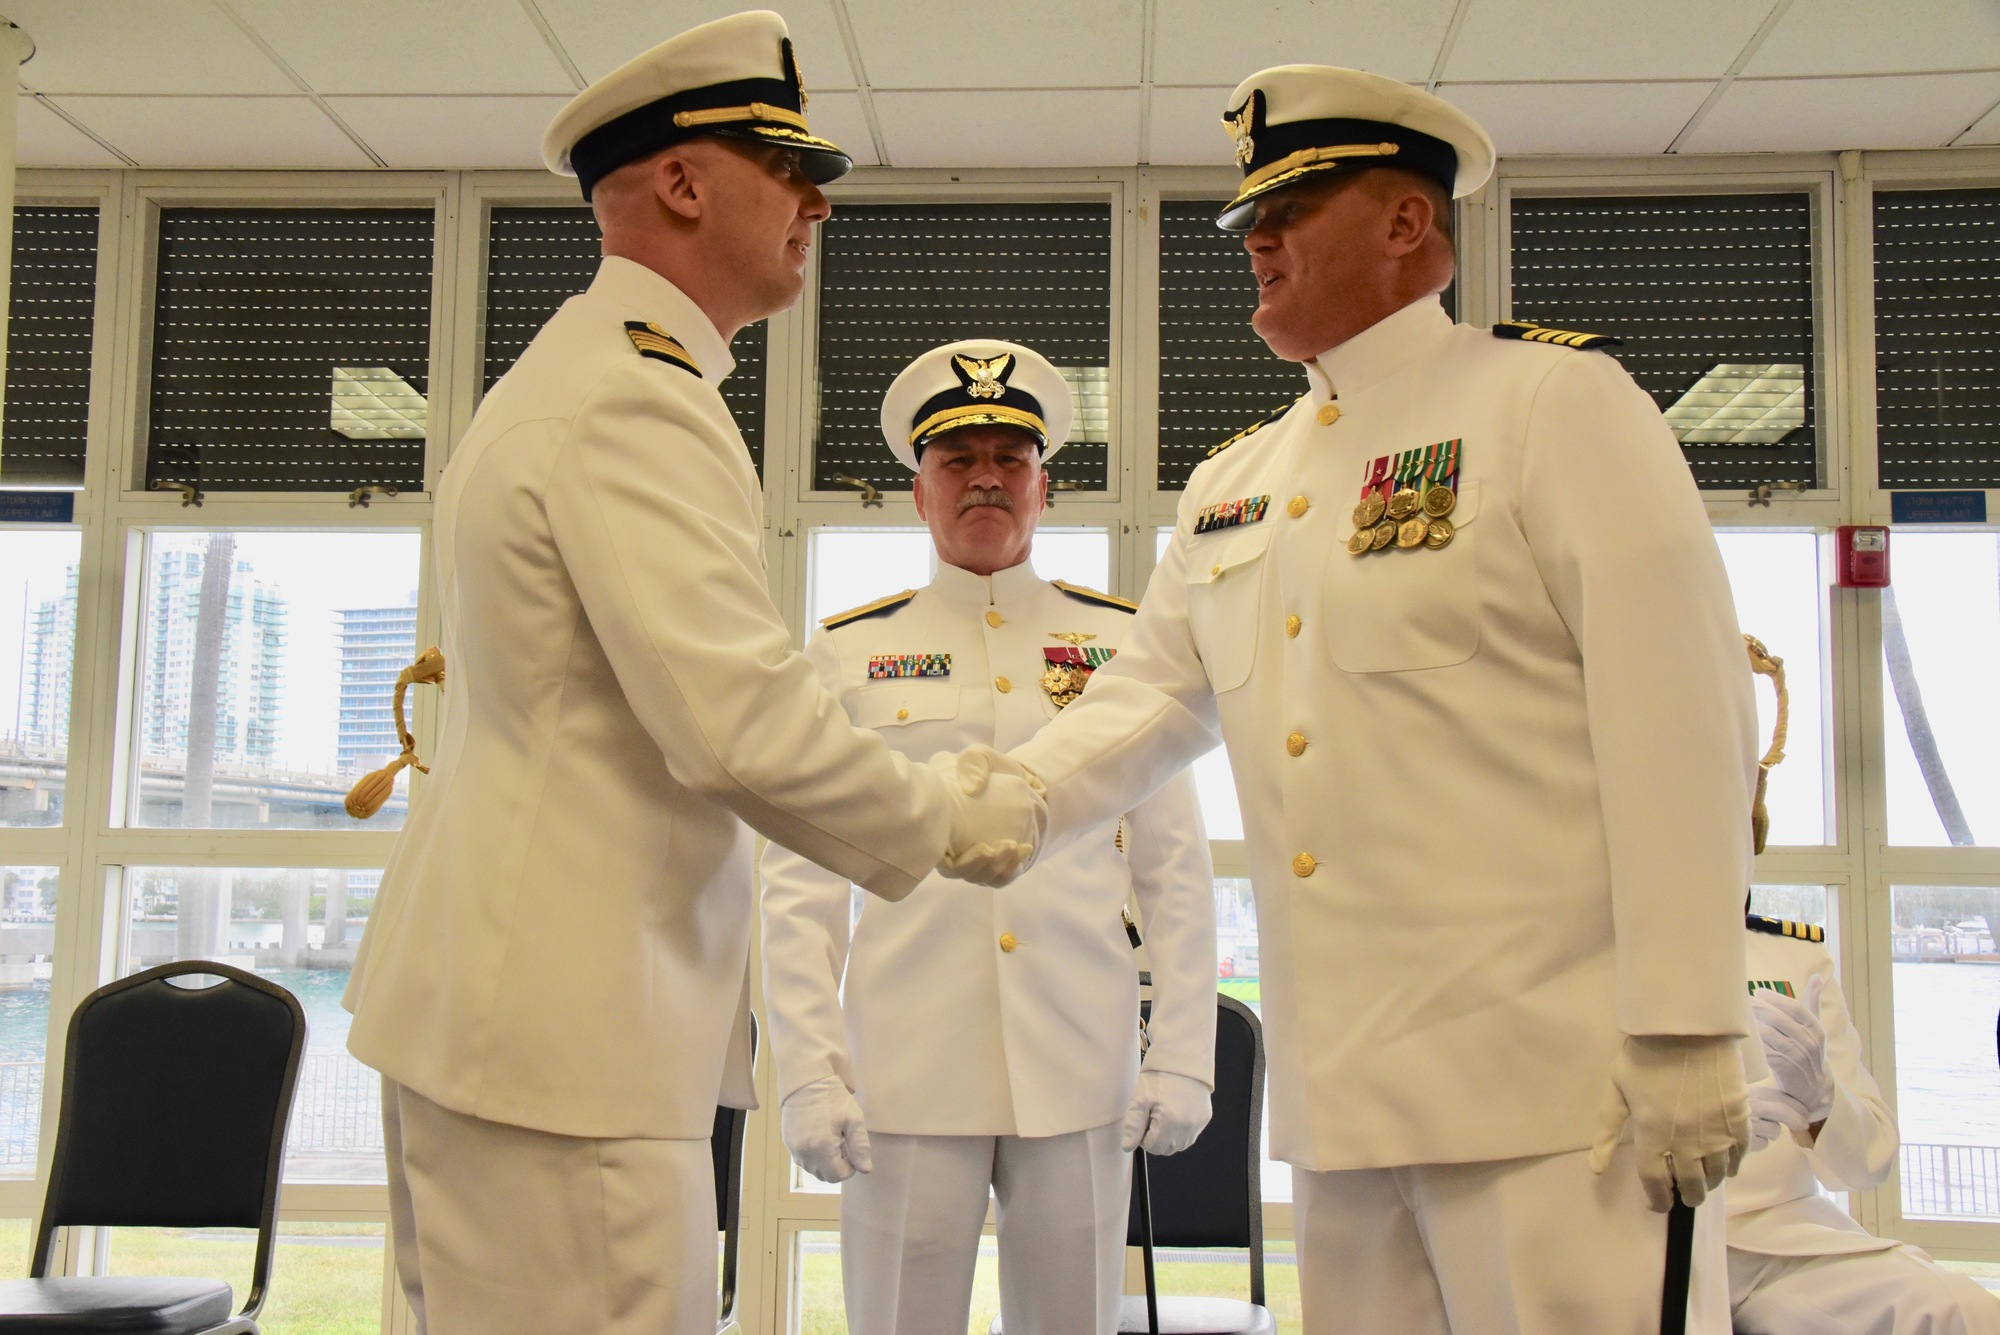 PHOTO RELEASE: Coast Guard Base Miami Beach holds change-of-command ceremony